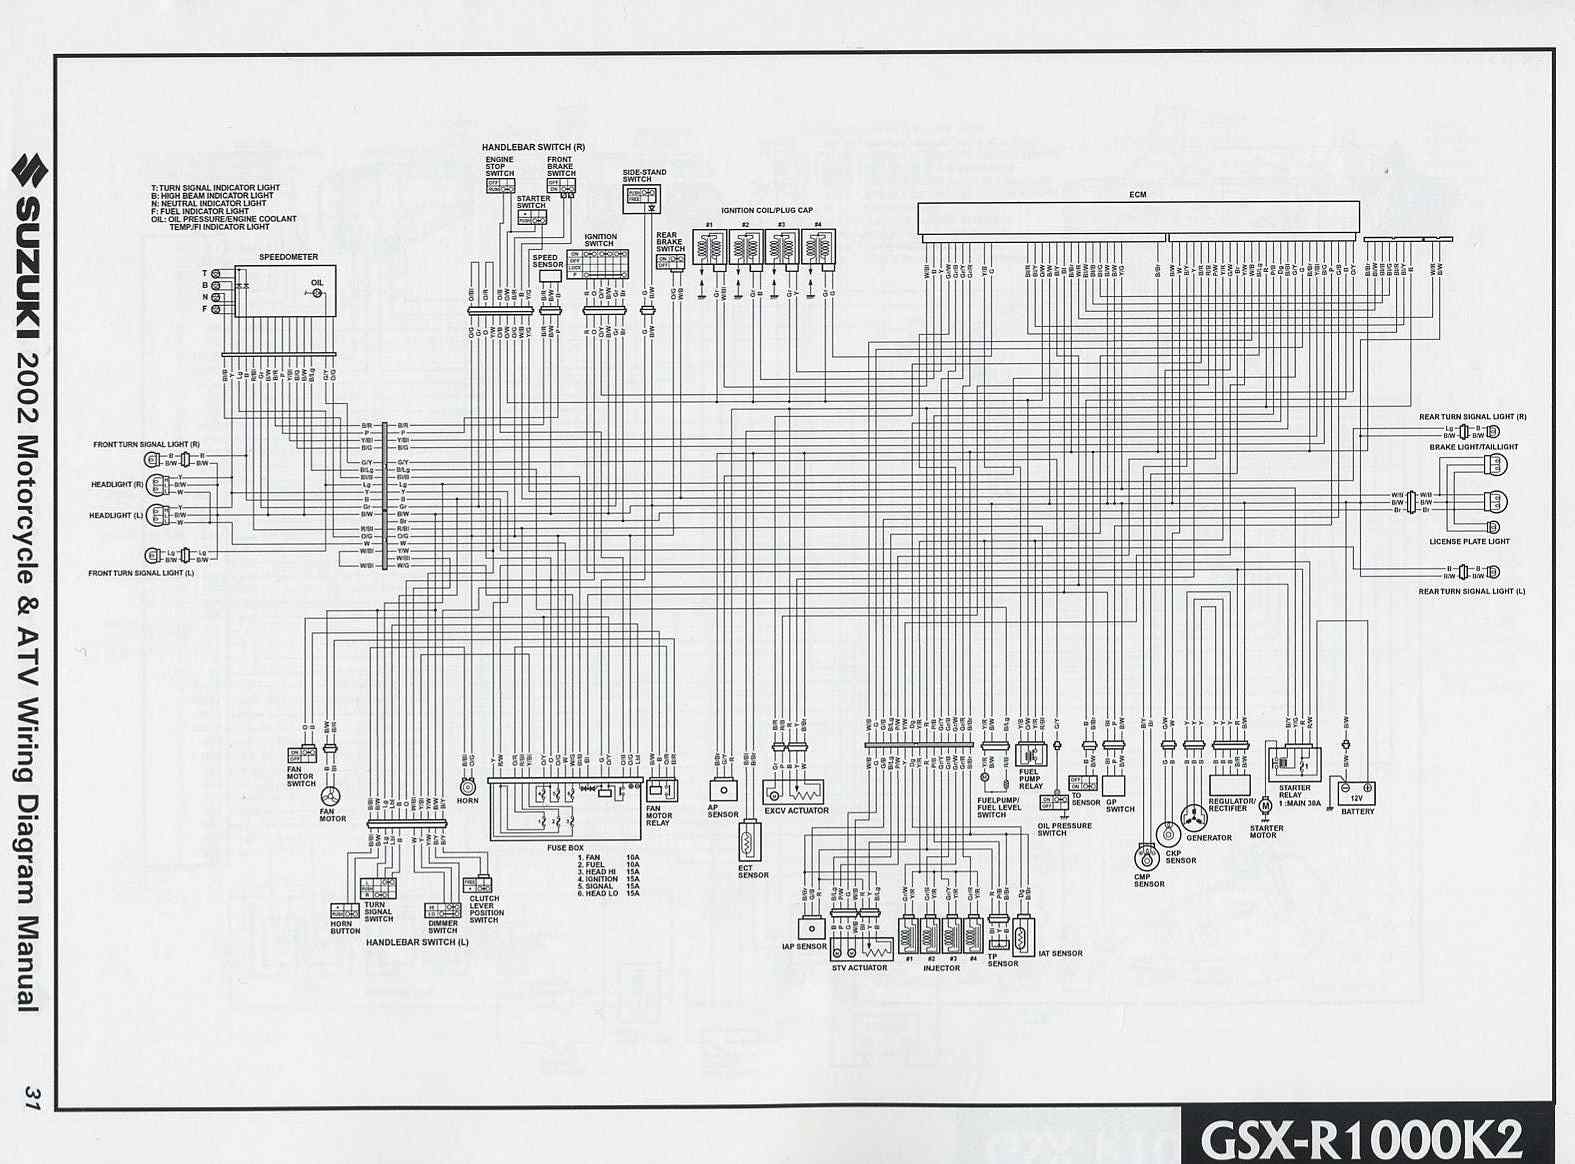 02 suzuki gsxr 1000 wiring diagram example electrical wiring diagram u2022 rh cranejapan co Yamaha R1 Wiring-Diagram Headlight Wiring Diagram